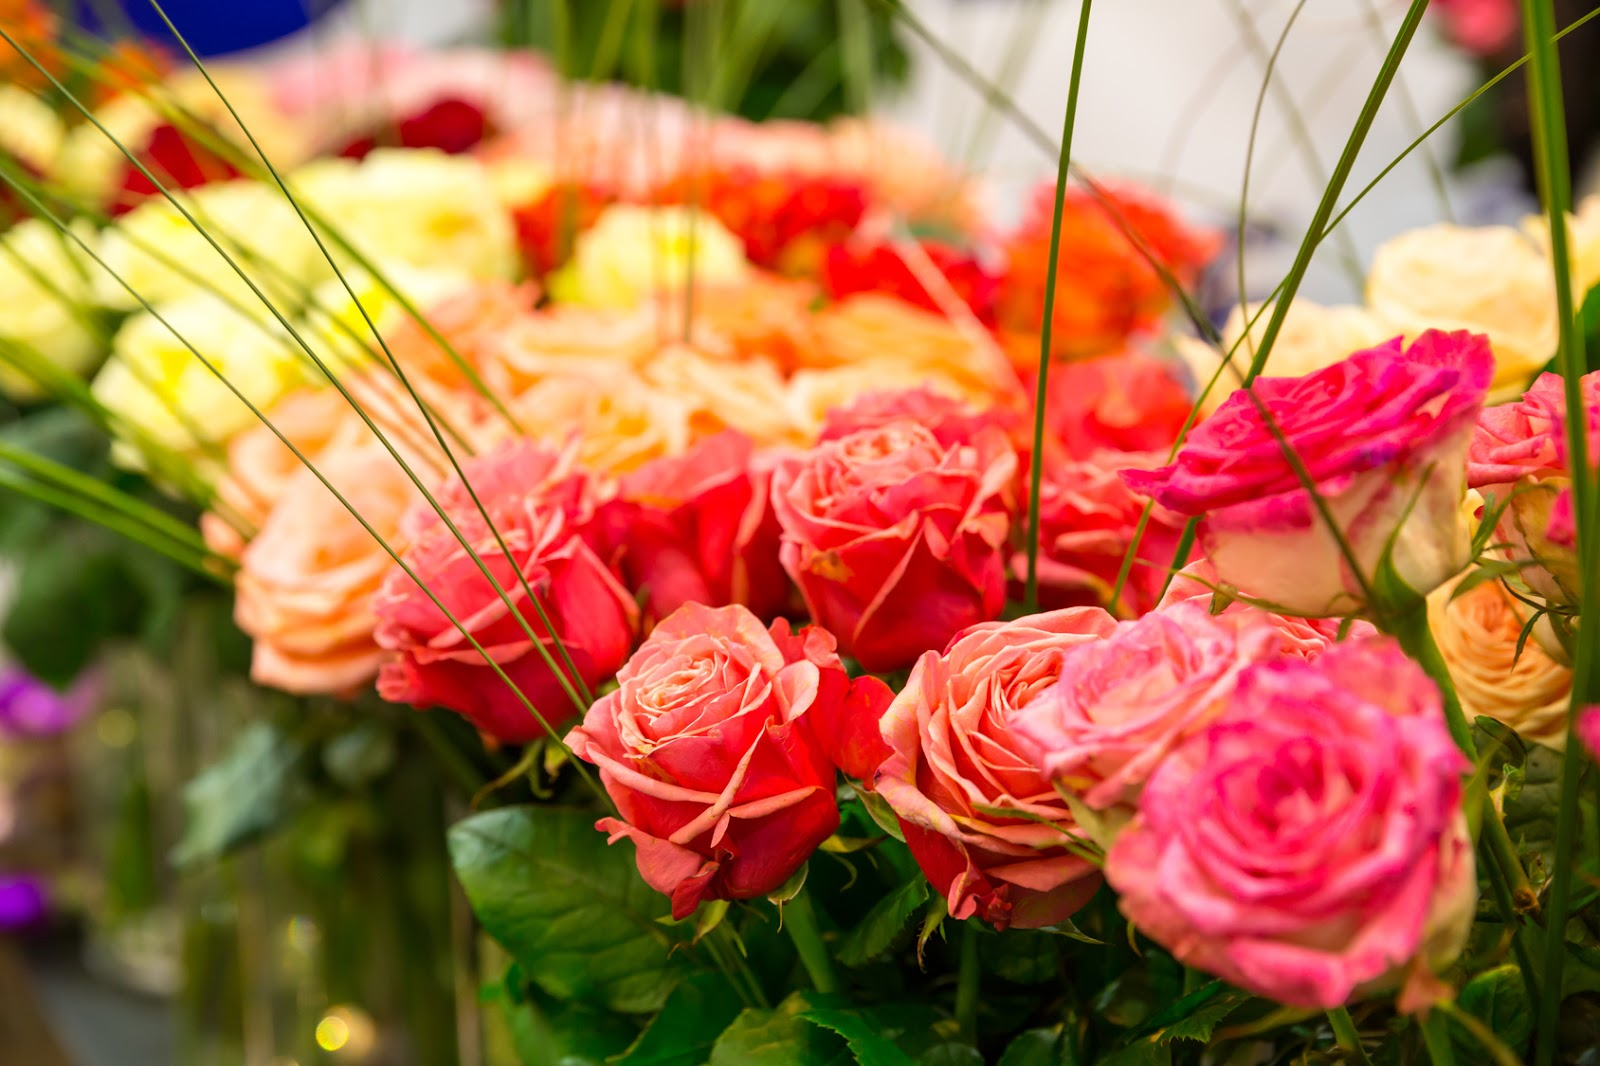 Green Valley Floral: Learn the Hidden Meanings Behind Rose Colors